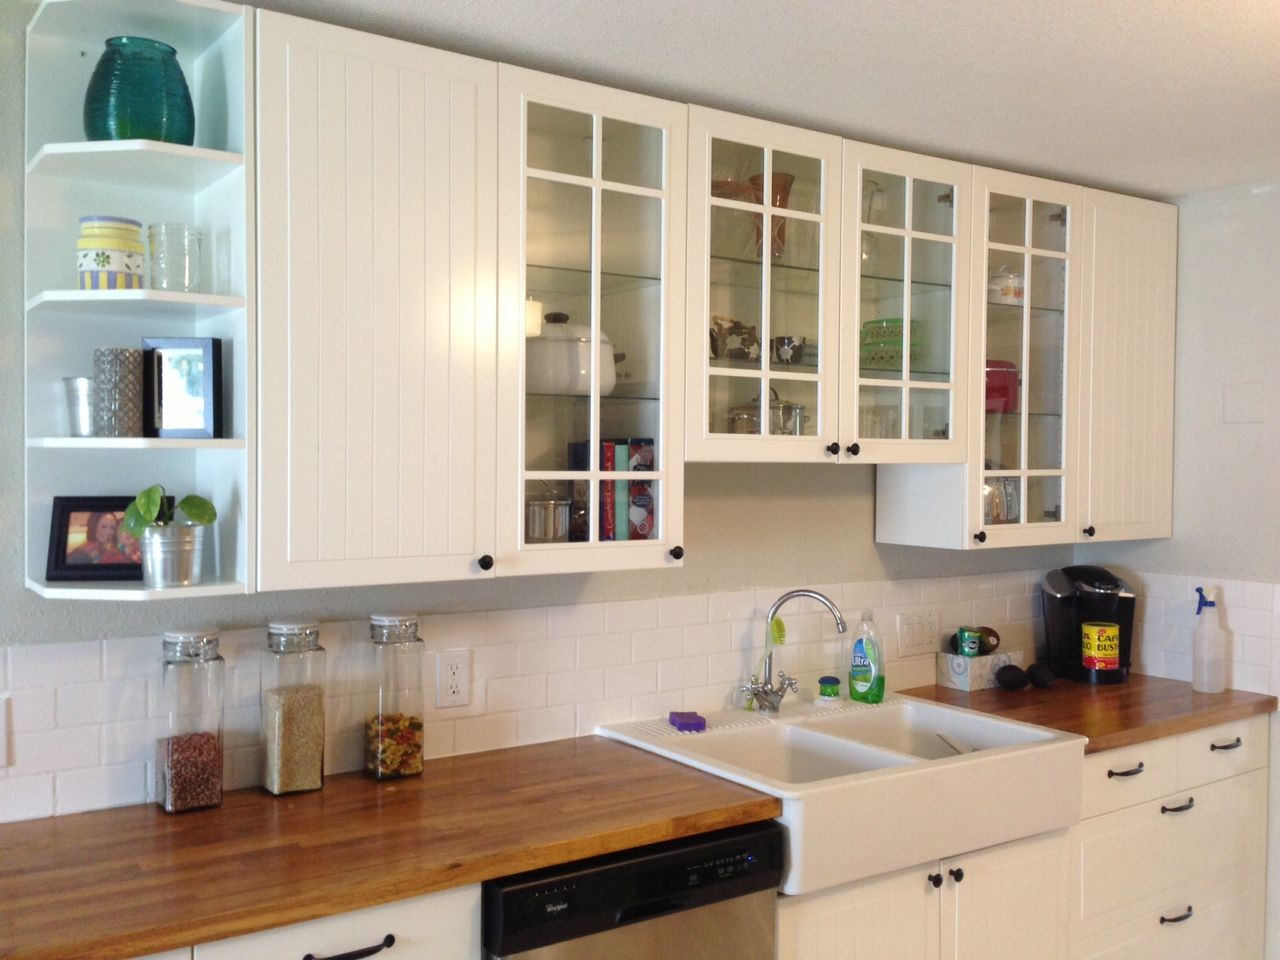 Our kitchen: Ikea Stat cabinets, butcher block counters, Ikea farm ...